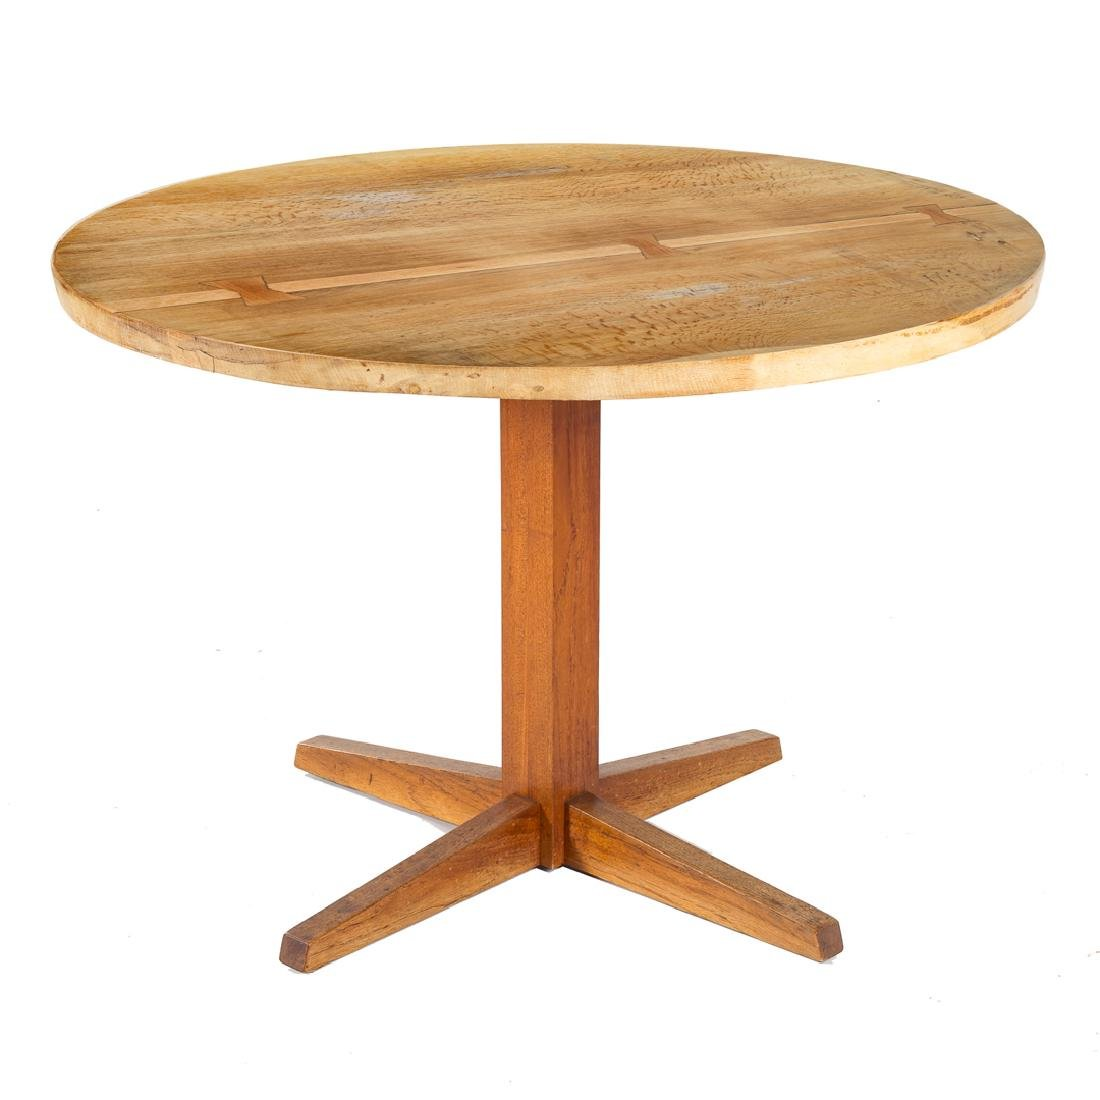 George Nakashima Round Pedestal Table